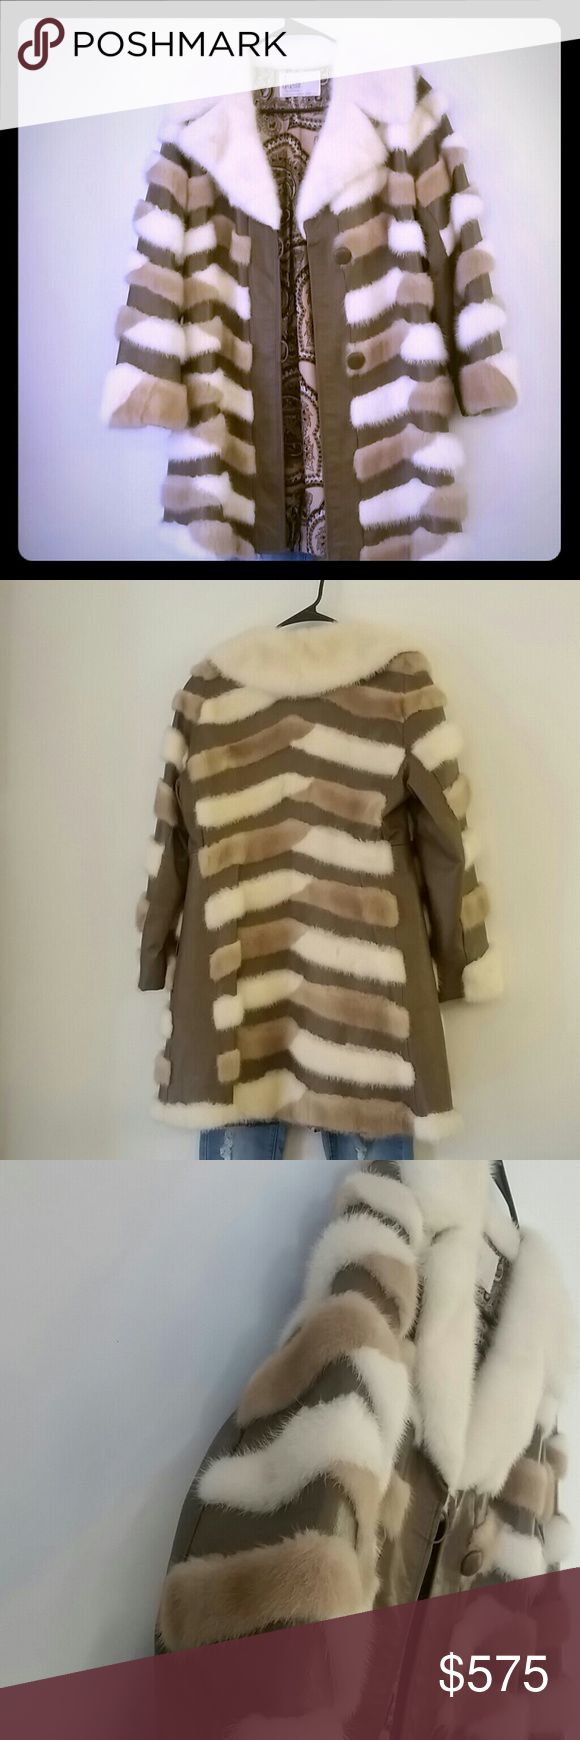 Gorgeous Drazens Mink & Leather Jacket Tan leather , off white  & tan Mink fur with a slight zig zag design. Beautiful off white big Mink collar. Worn twice. EXCELLENT condition. Drazens Jackets & Coats